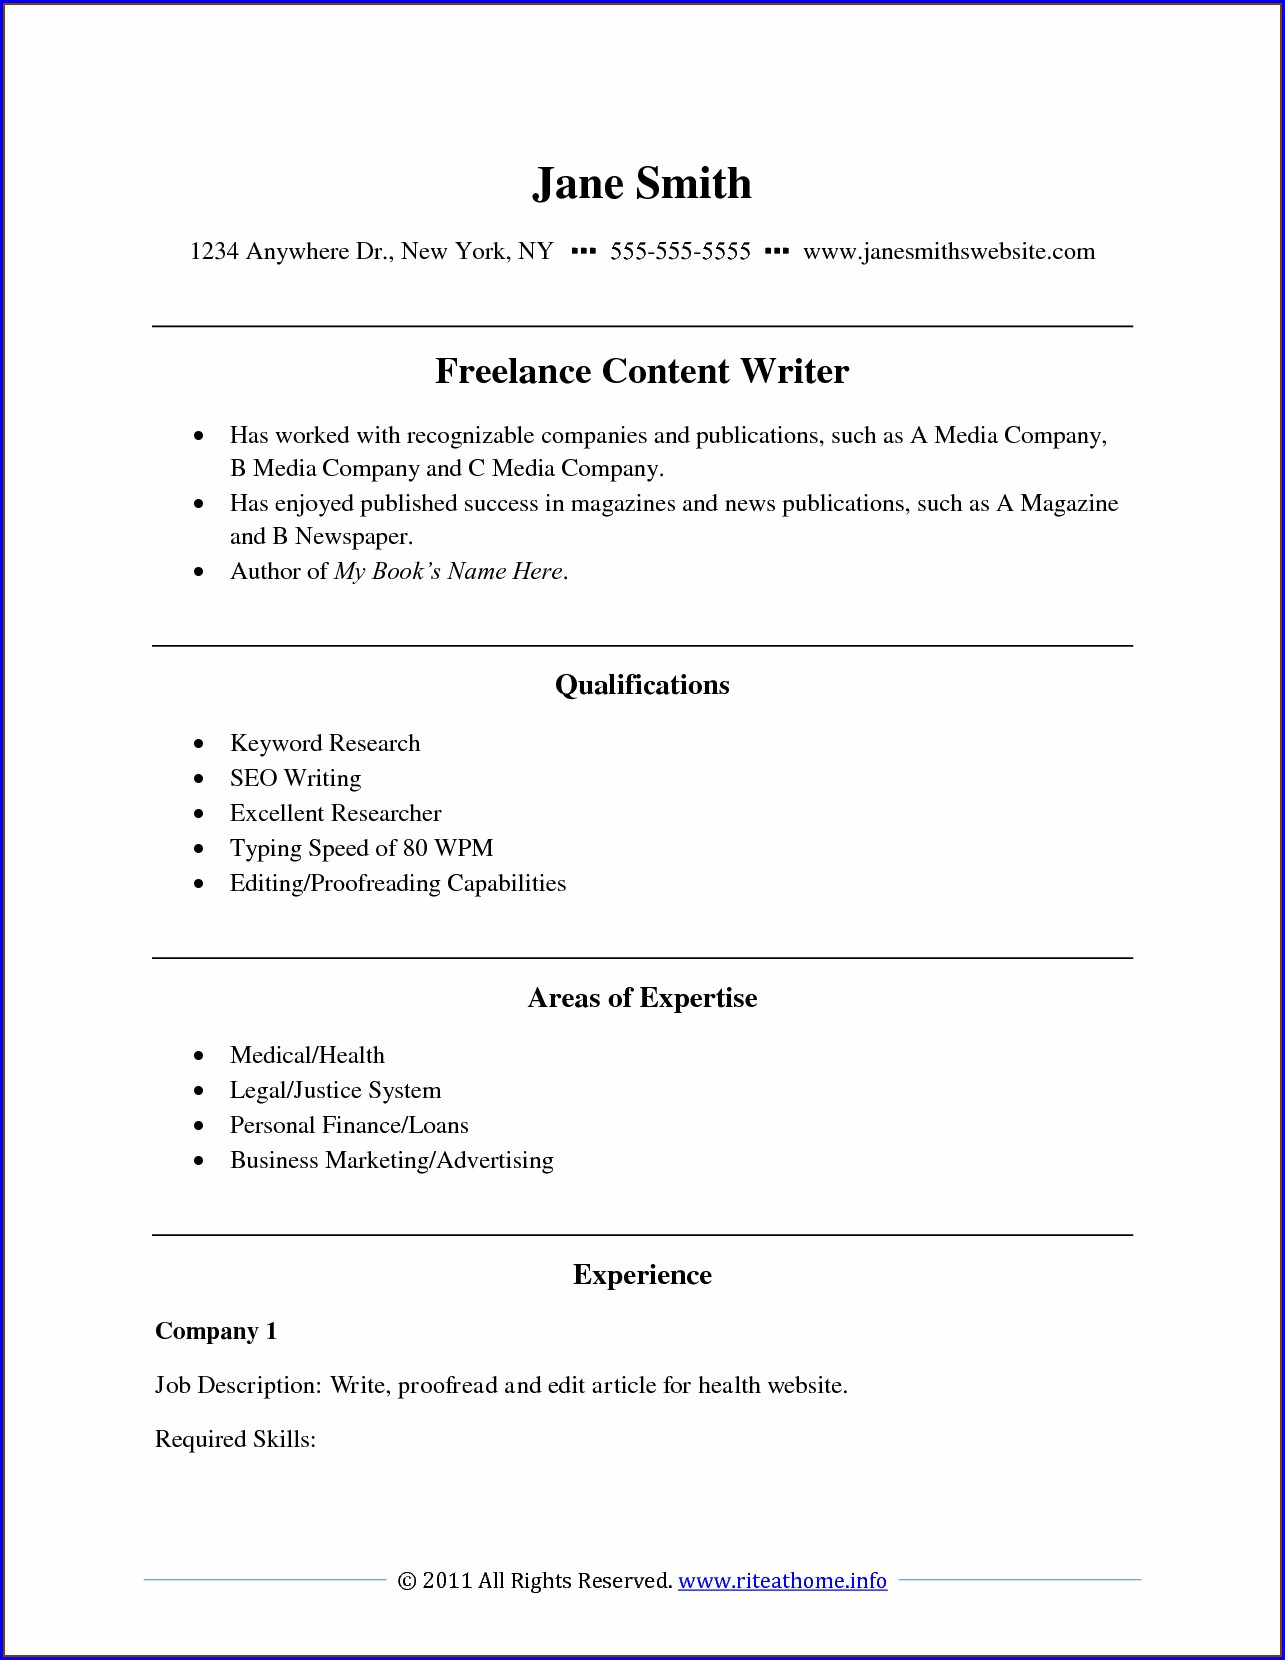 Expert resume writing group